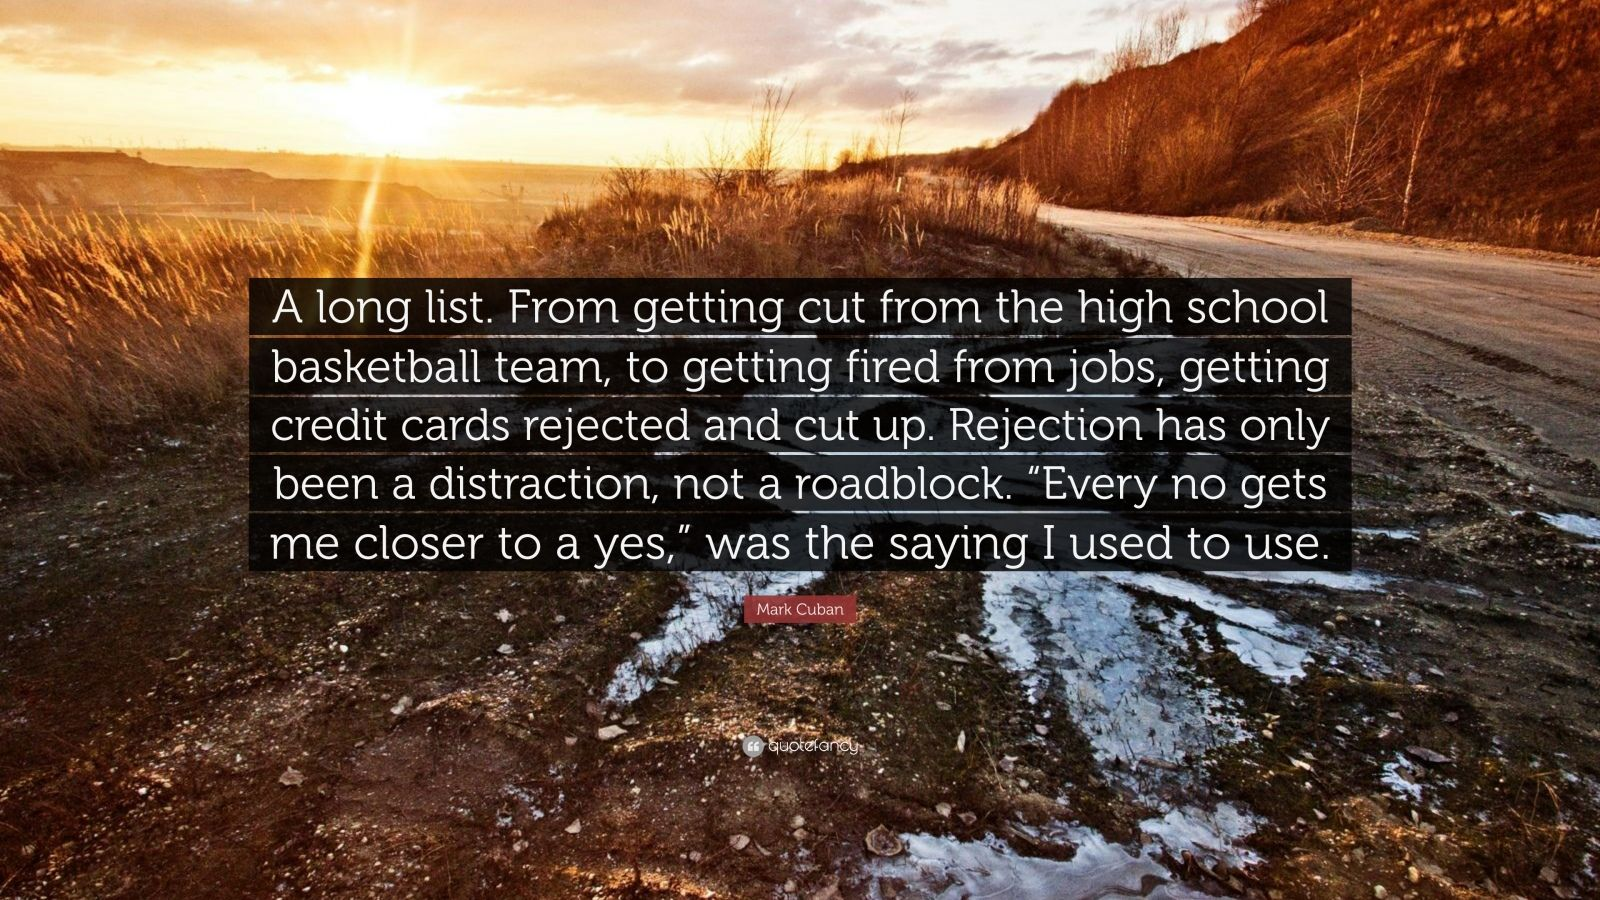 """Mark Cuban Quote: """"A long list. From getting cut from the high school basketball team, to getting fired from jobs, getting credit cards rejected and cut up. Rejection has only been a distraction, not a roadblock. """"Every no gets me closer to a yes,"""" was the saying I used to use."""""""